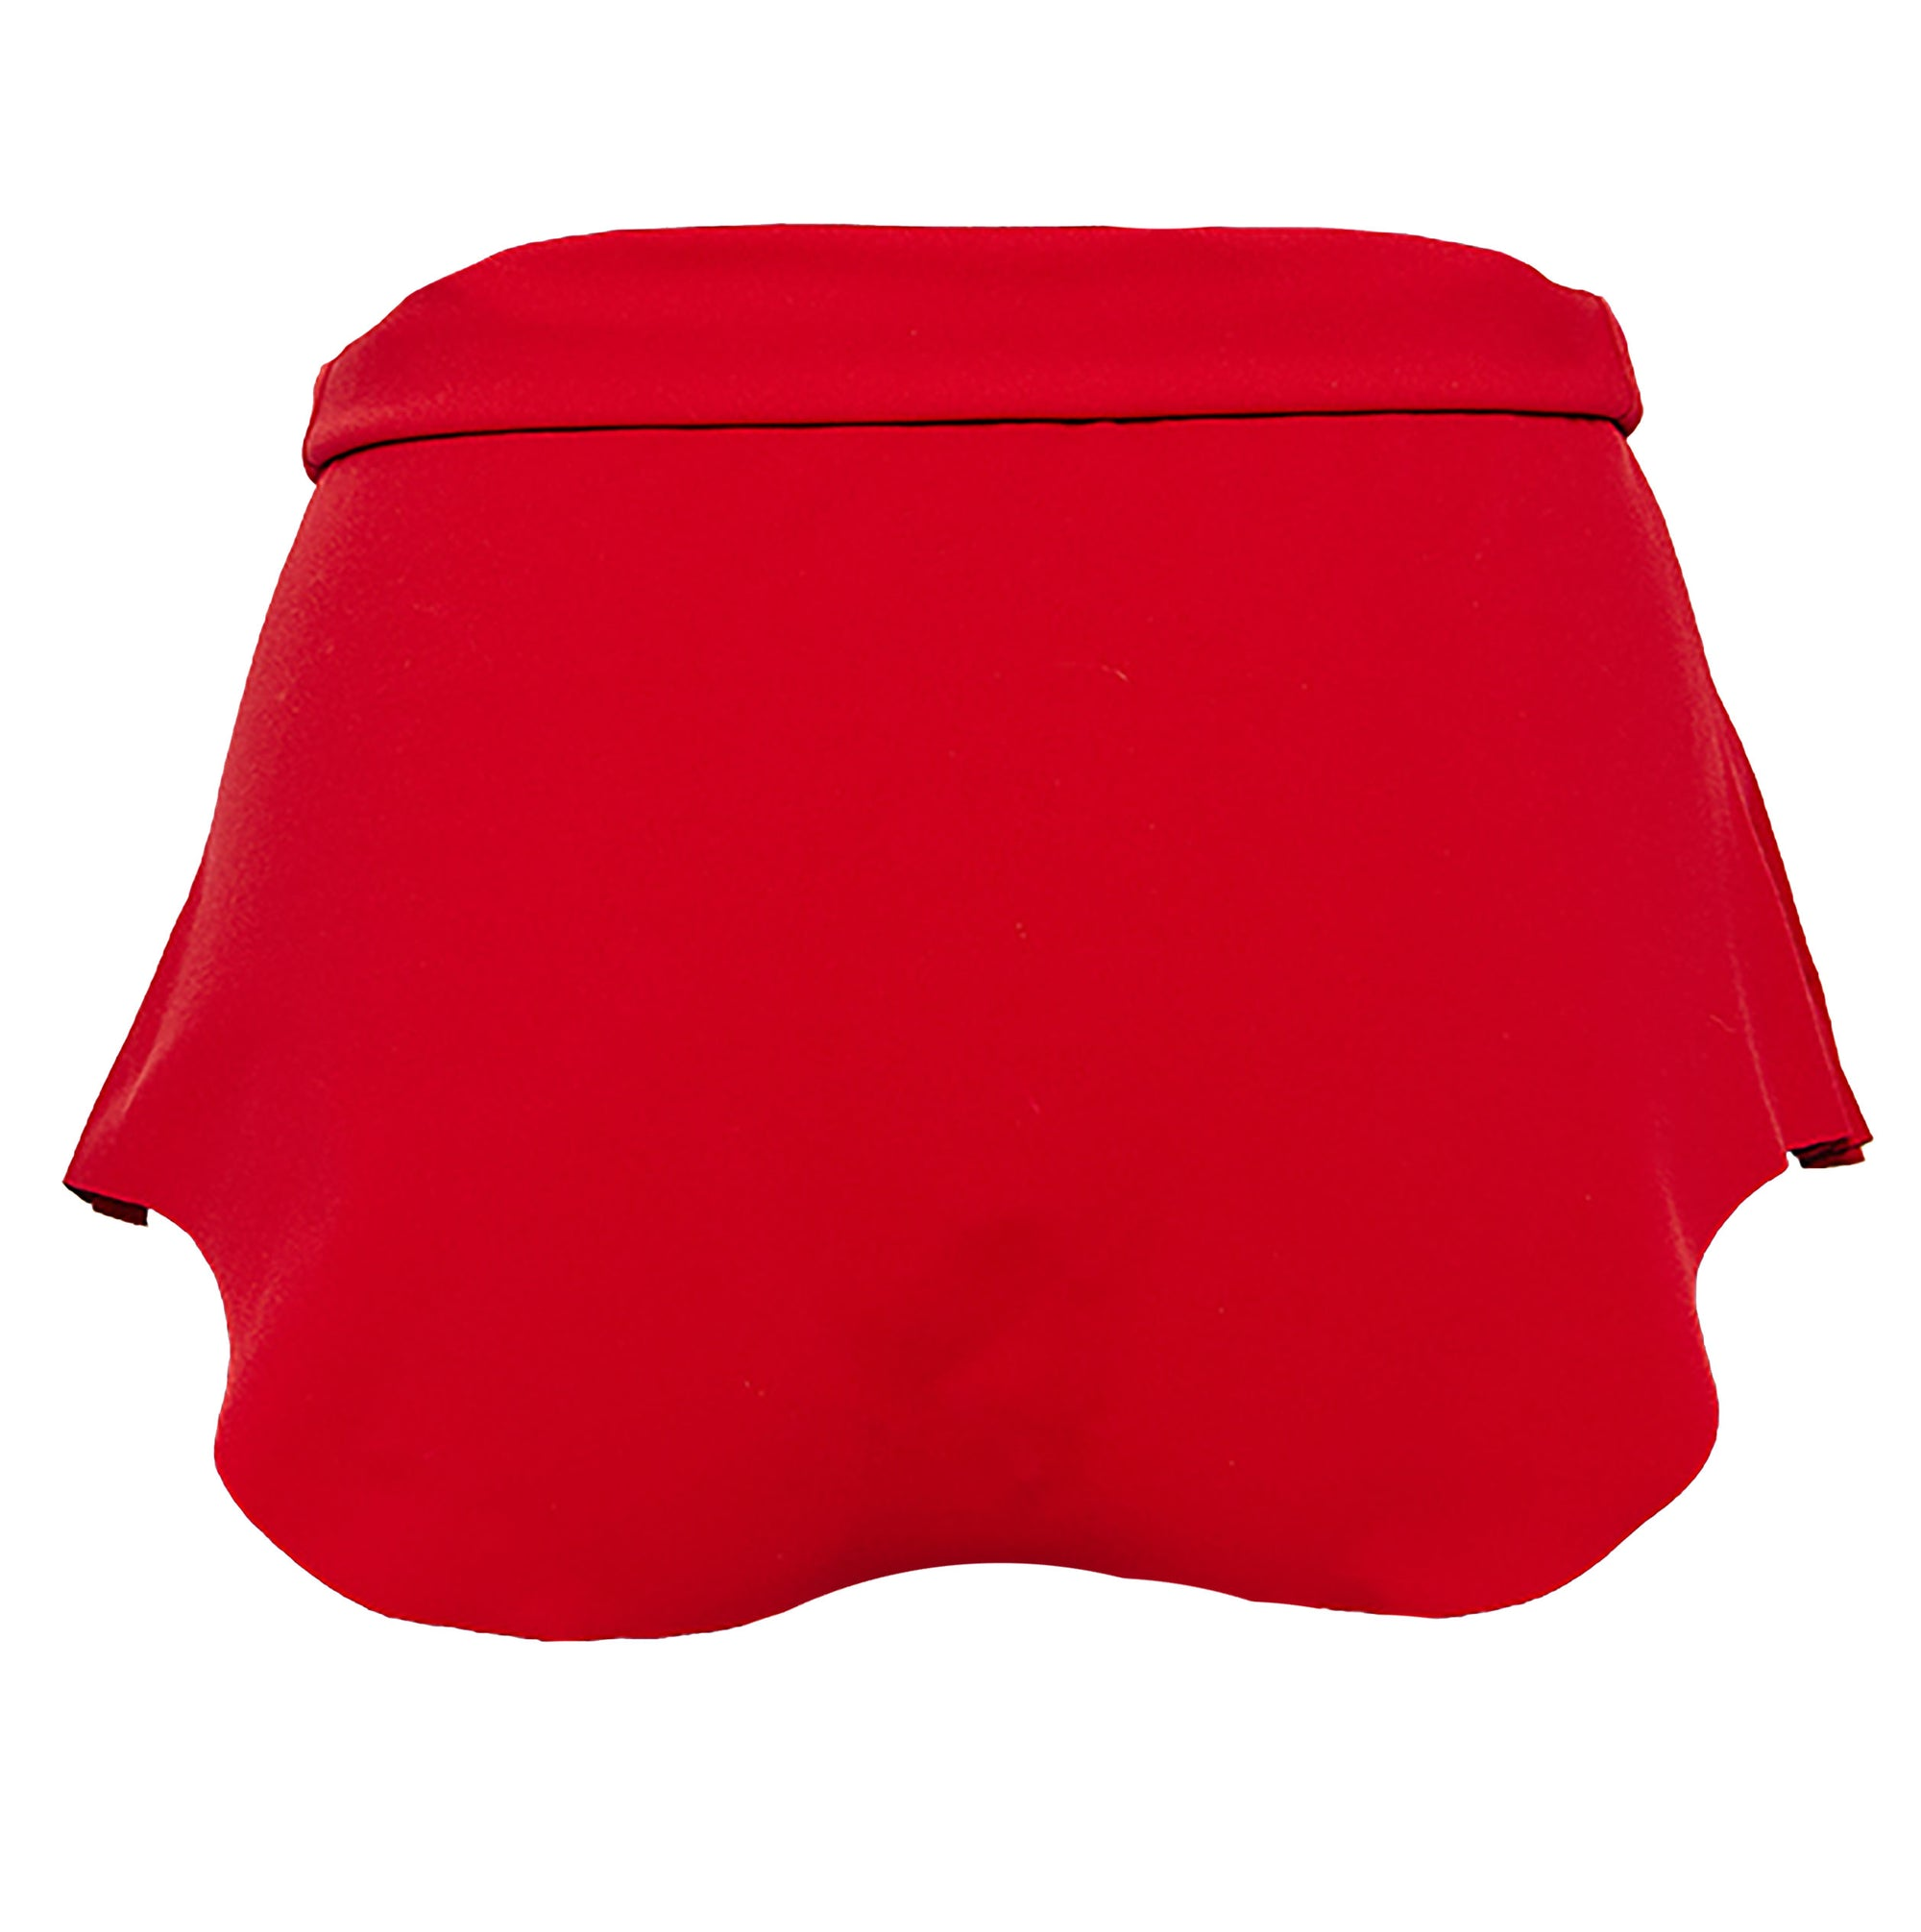 Ruban Noir Tu me rend fou brief in red